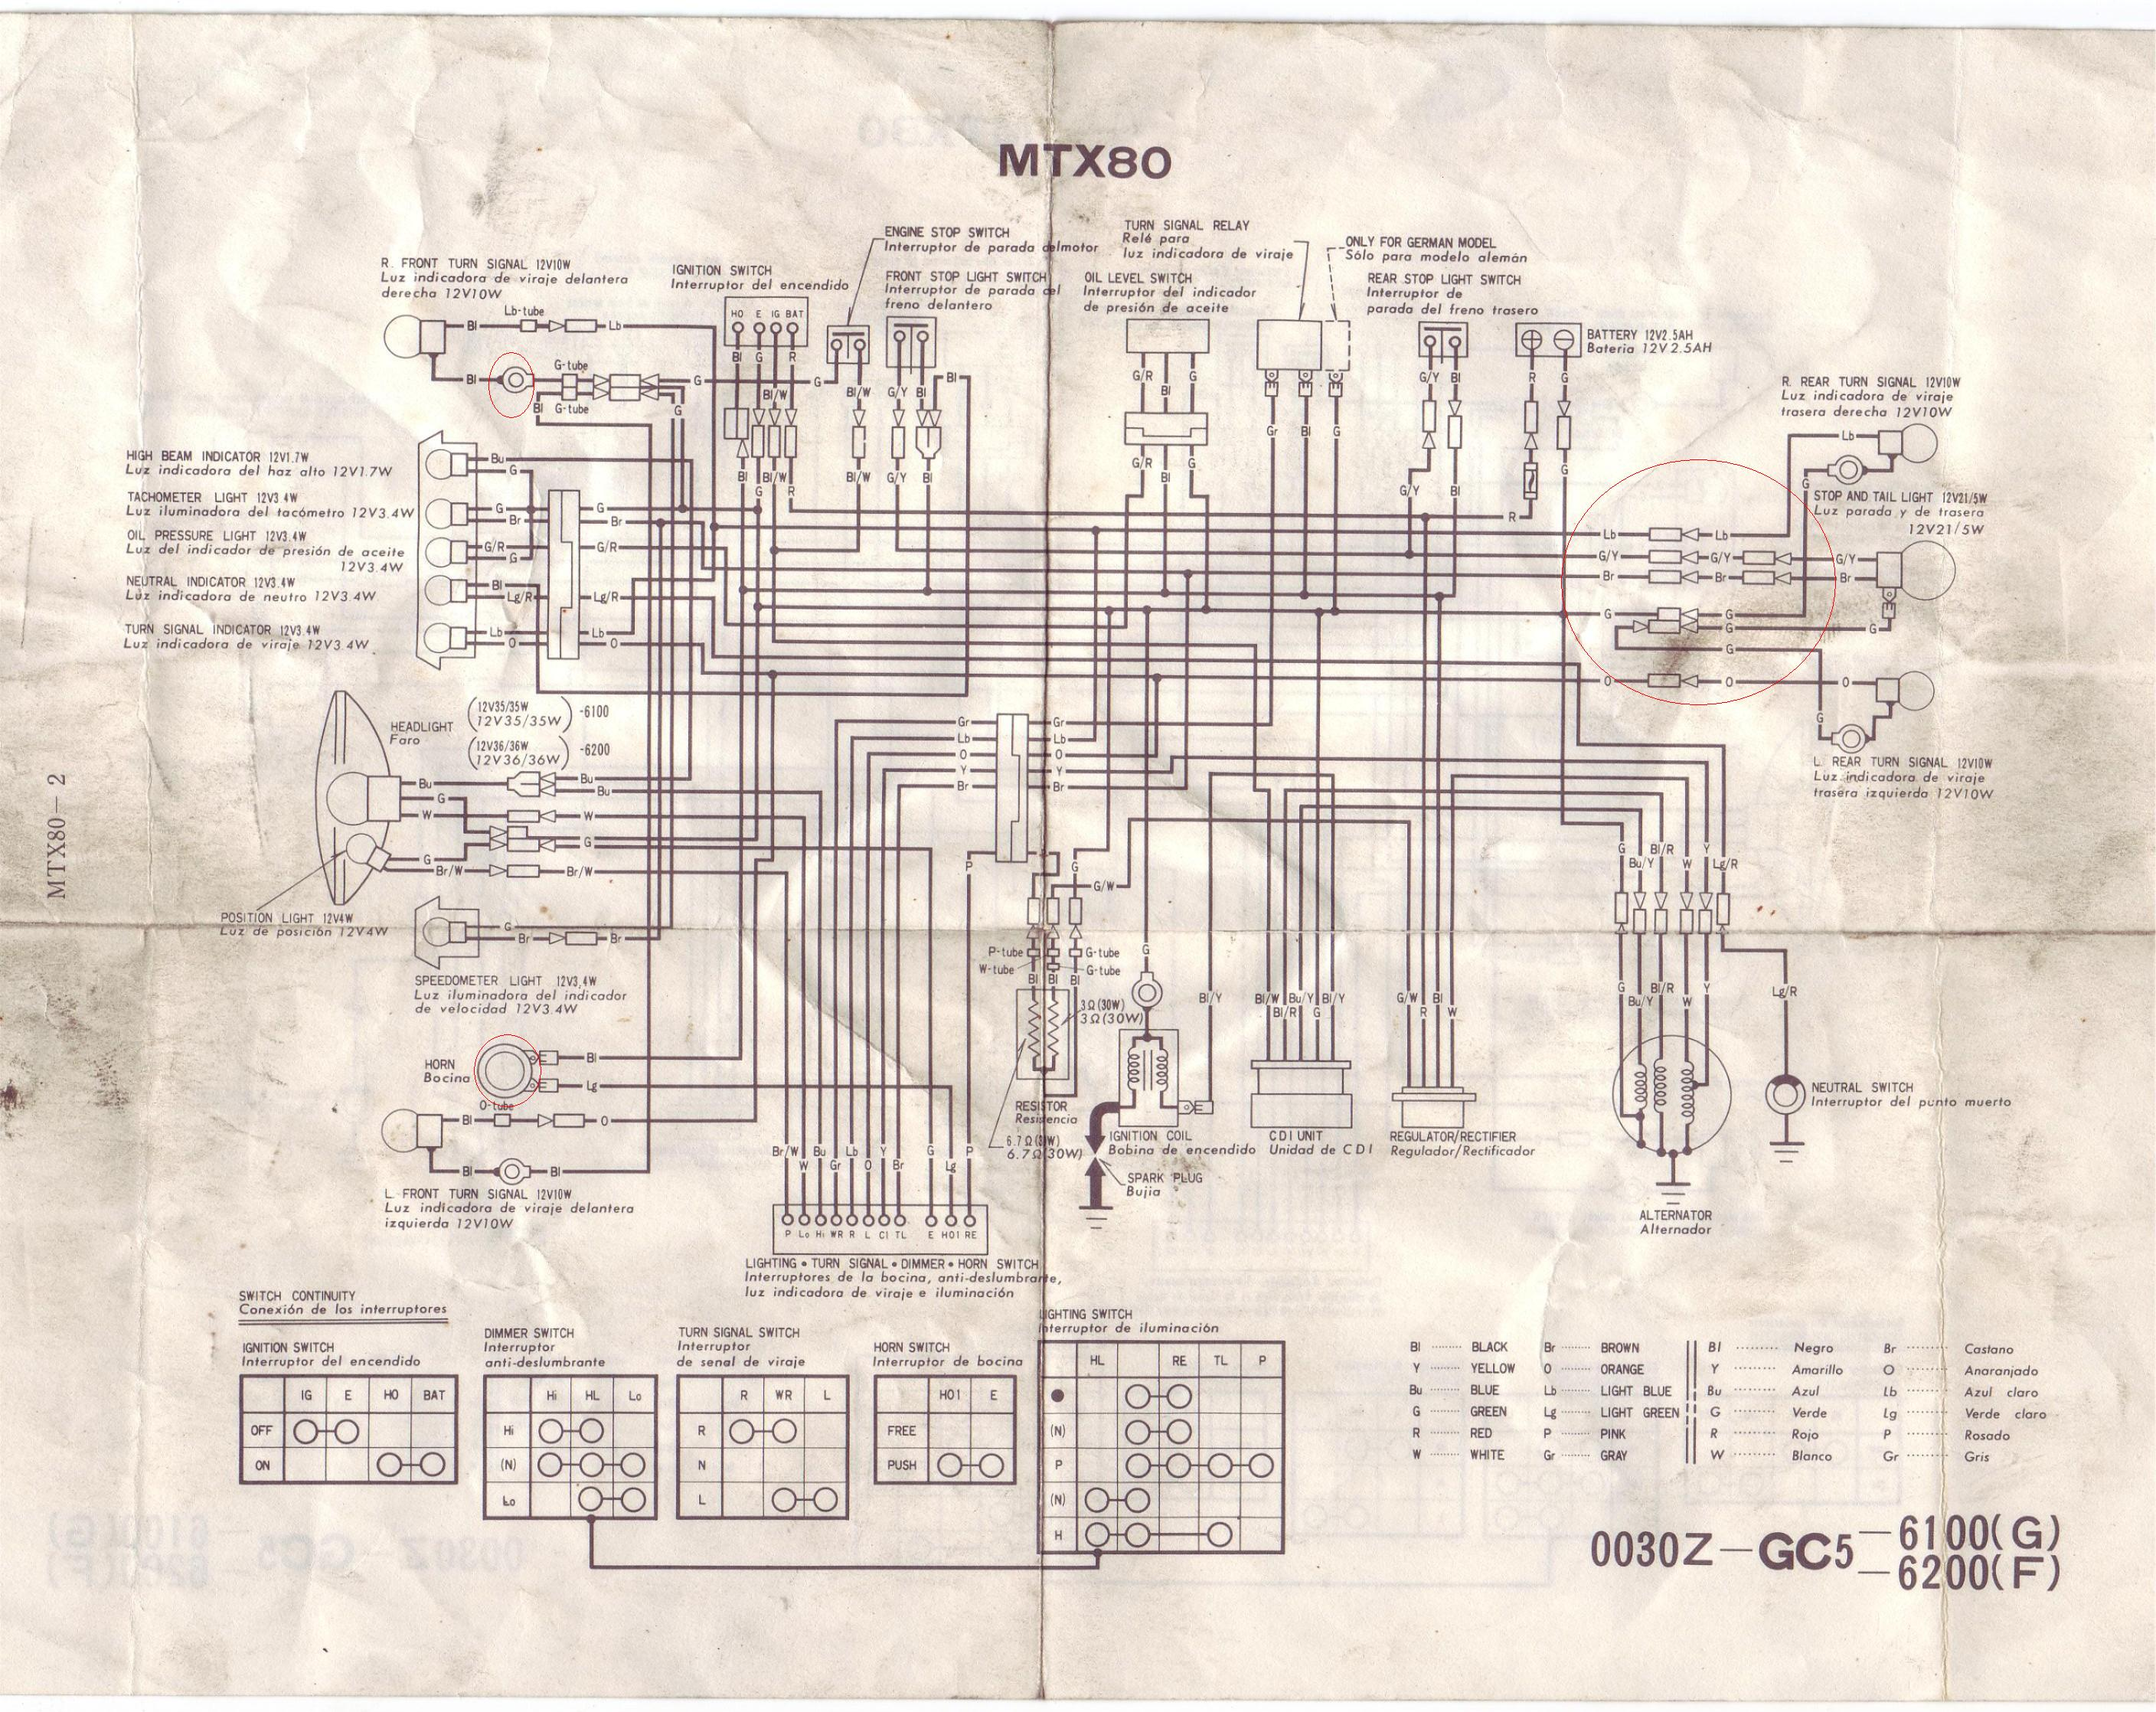 Honda Mtx 80 Wiring Diagram Opinions About Cimar Guitar Copy Gibson 125 And Schematics Dirt Bike